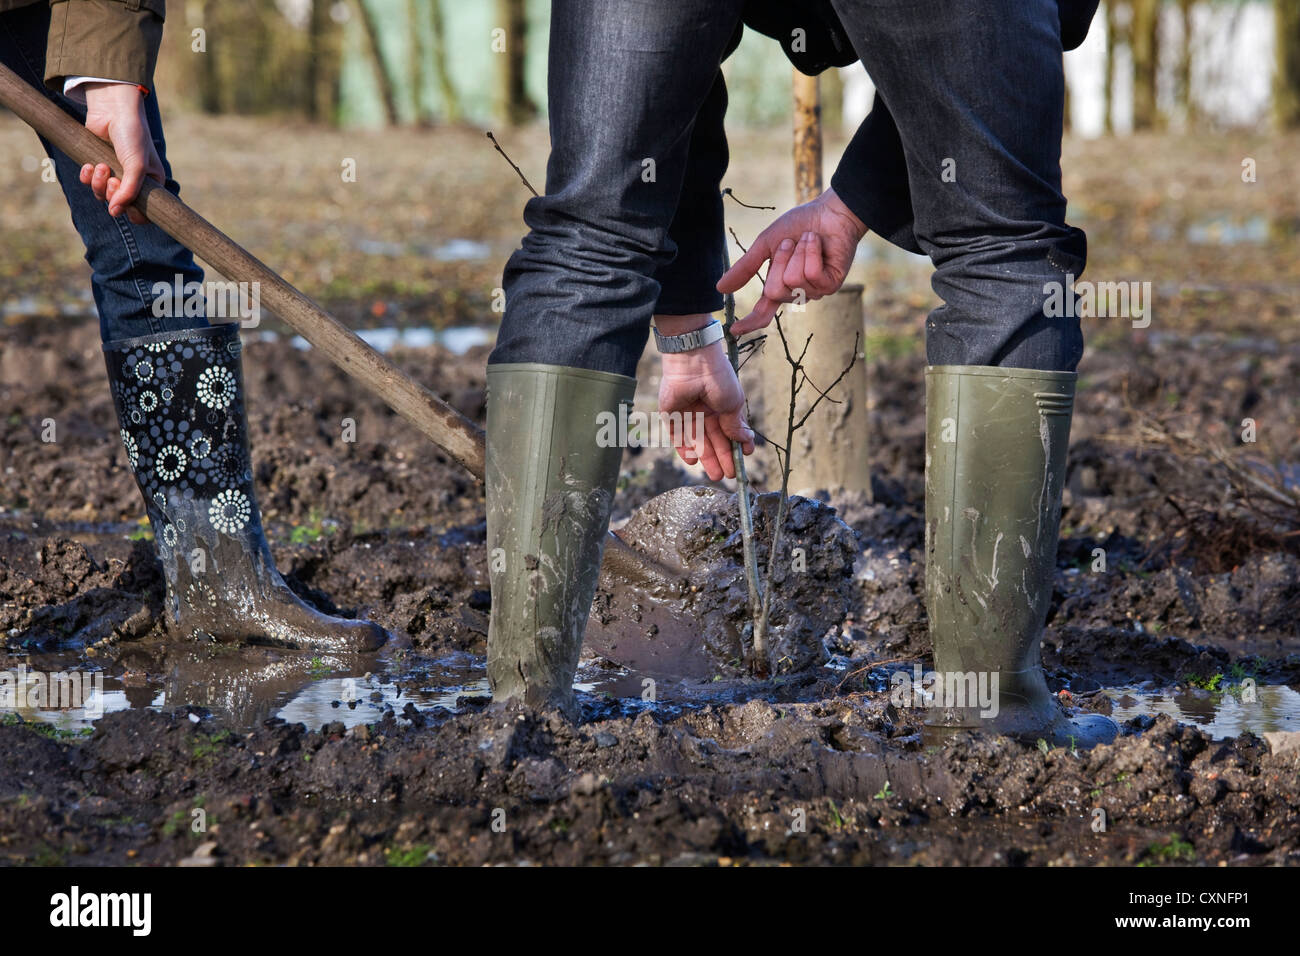 Man Wearing Rubber Boots Wellies Planting Tree With